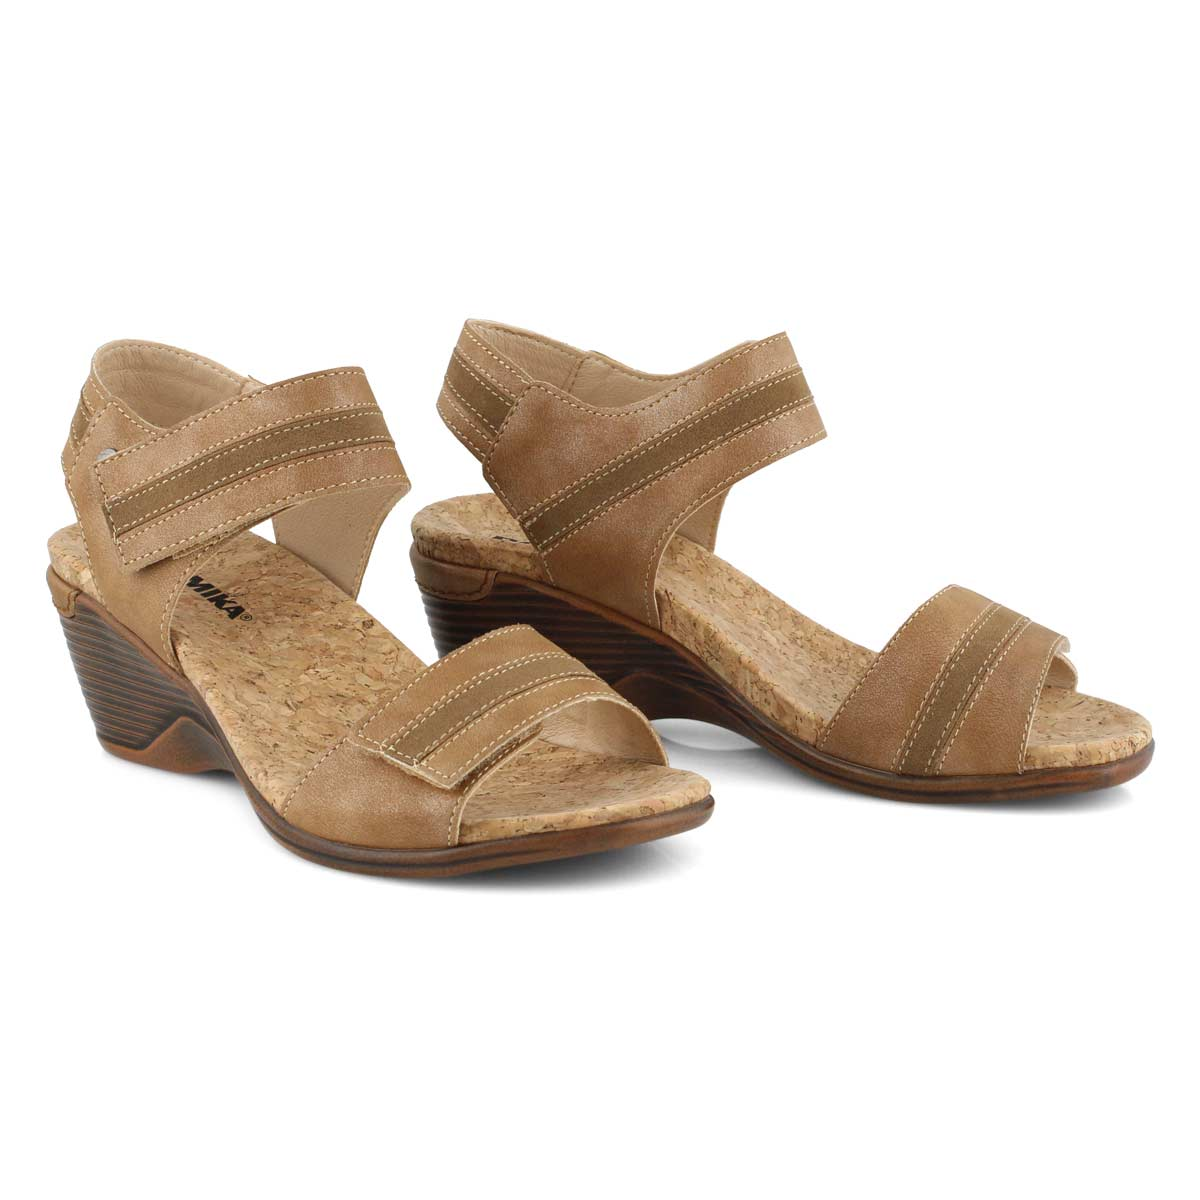 Lds Calgary 03 light tan wedge sandal